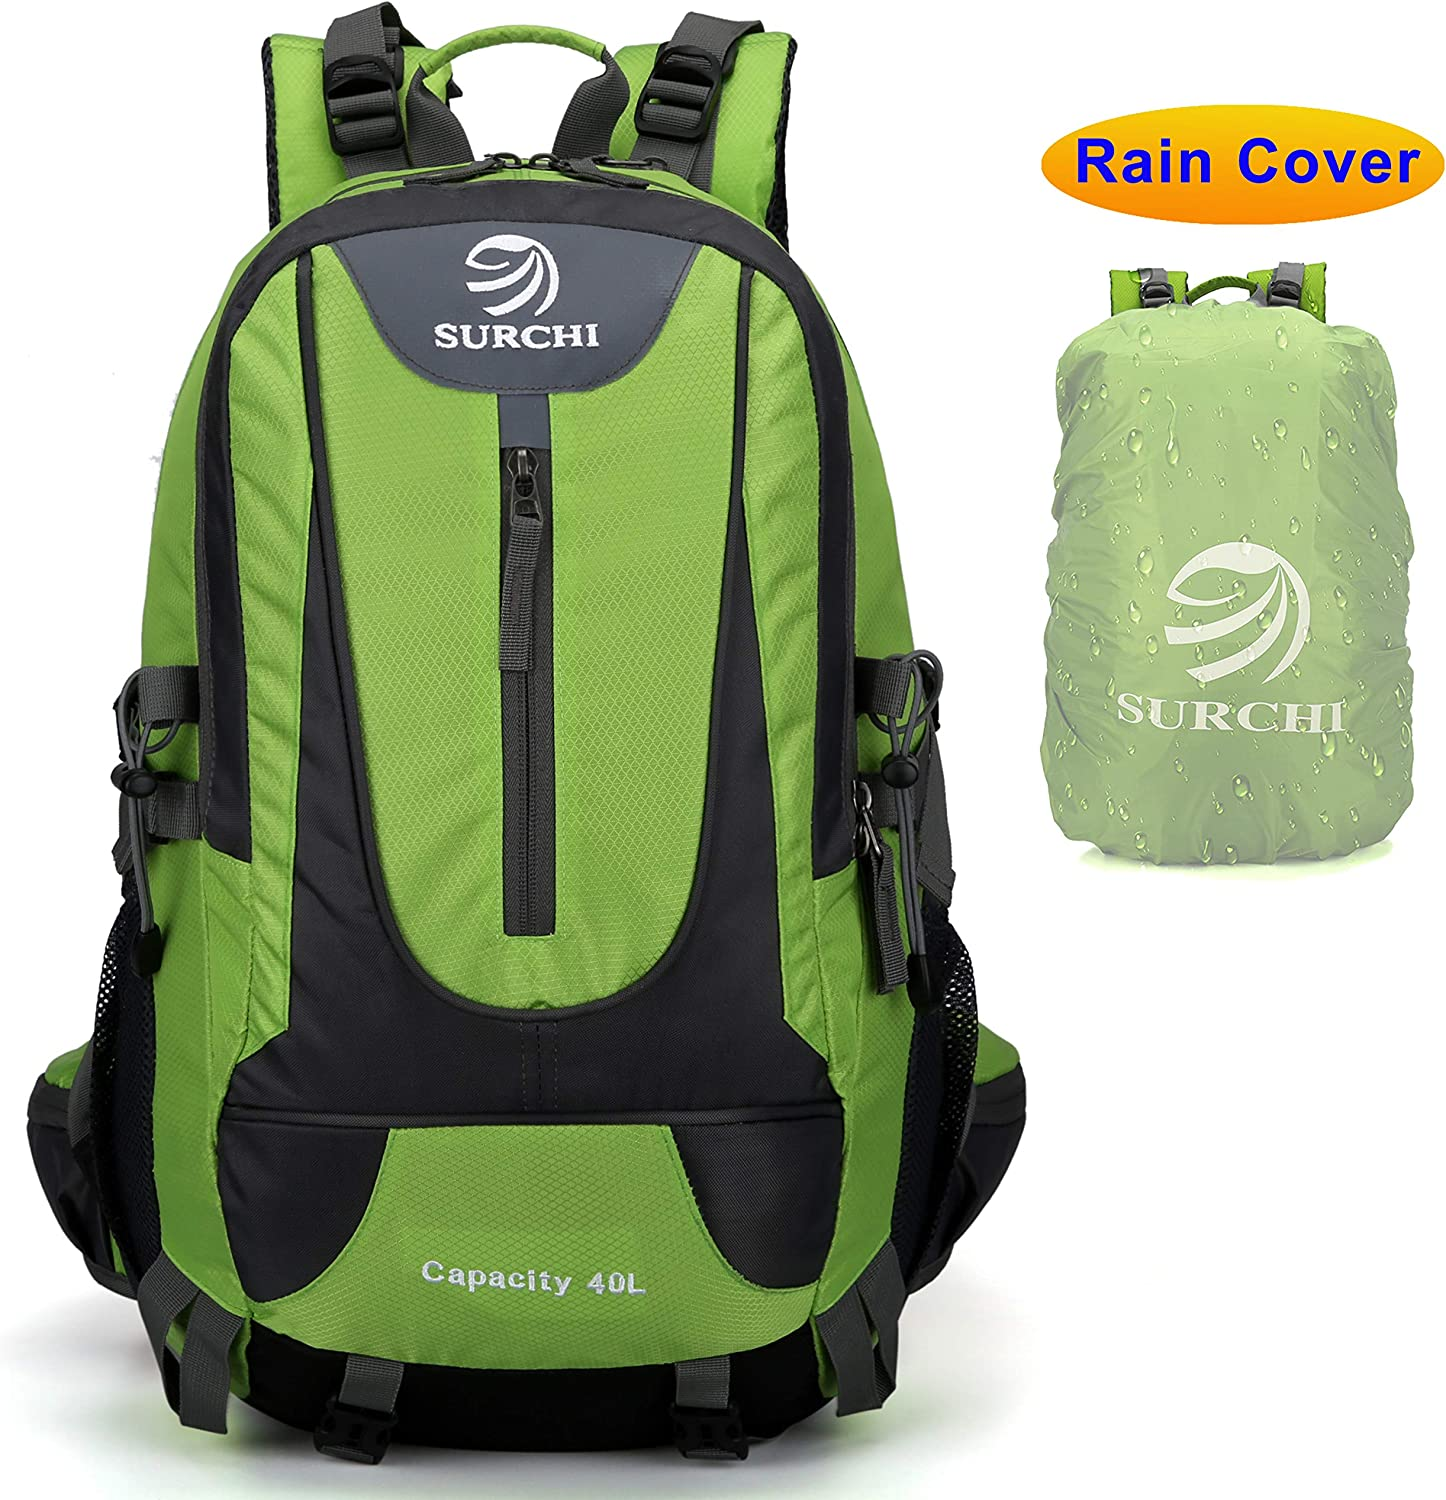 SURCHI Lightweight Hiking Backpack With Rain Cover Traveling Daypack 40L